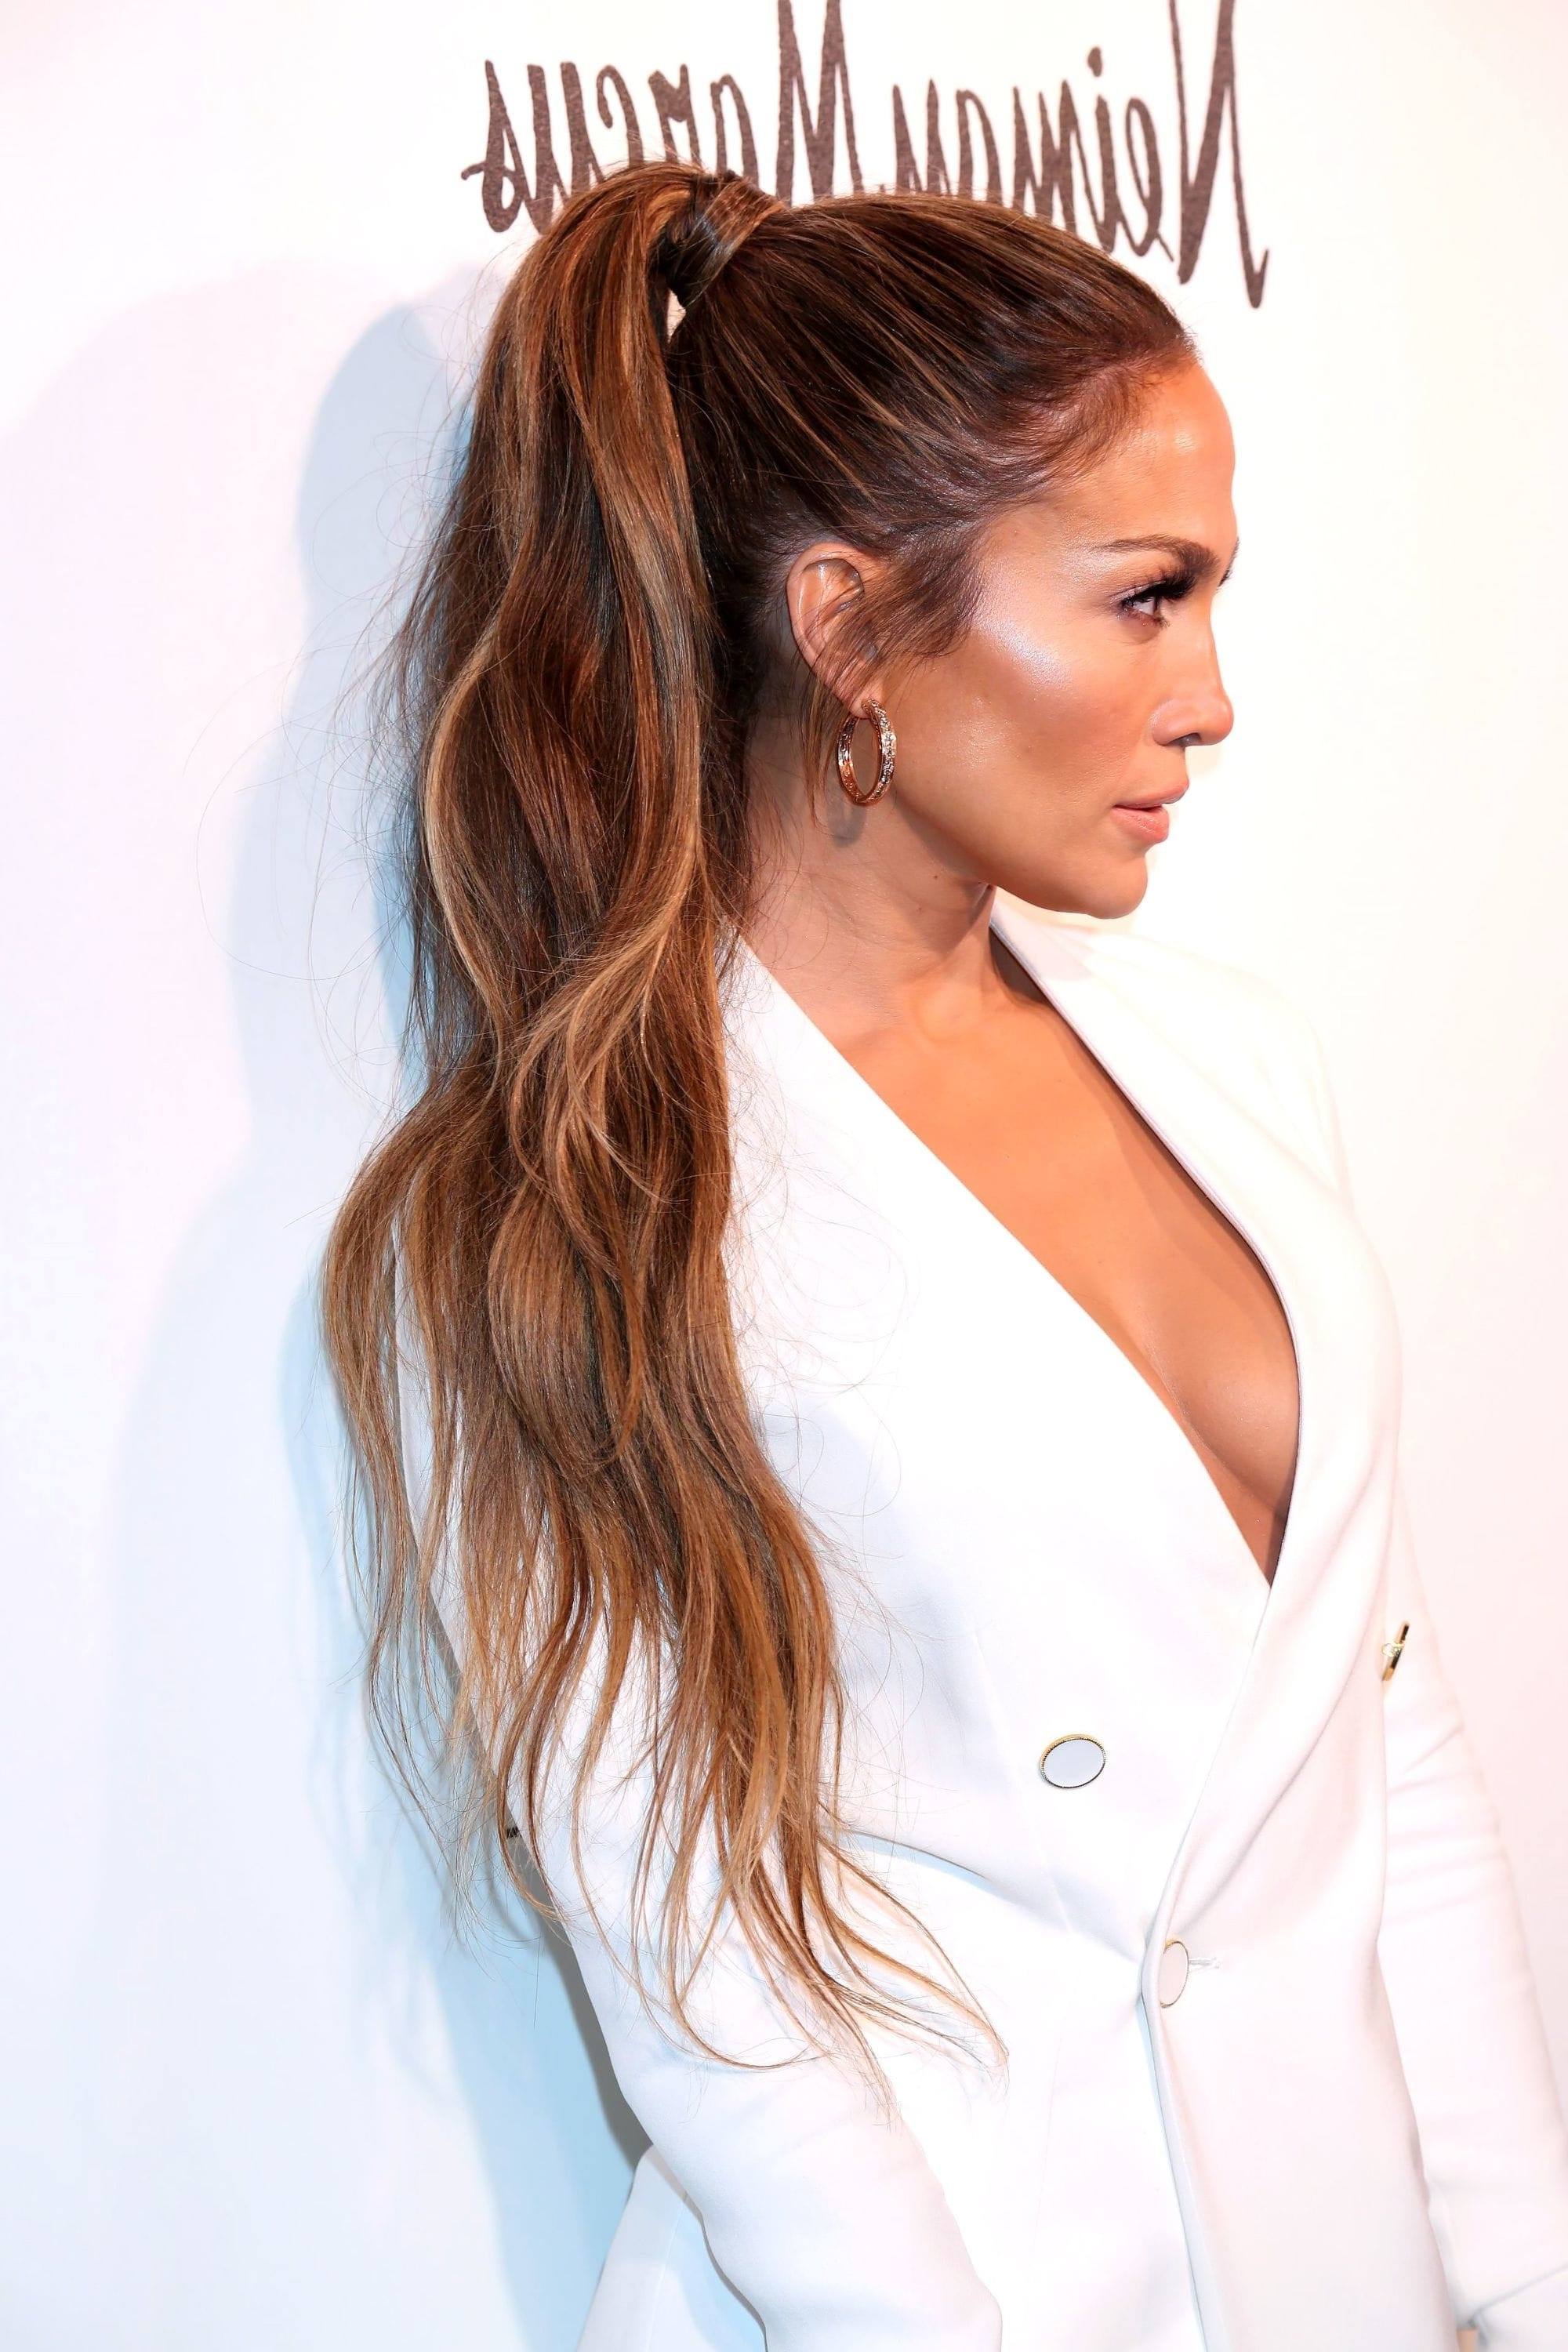 Easy High Ponytail Video Tutorial With Freddy My Love Pertaining To Most Up To Date Chic High Ponytail Hairstyles With A Twist (Gallery 20 of 20)